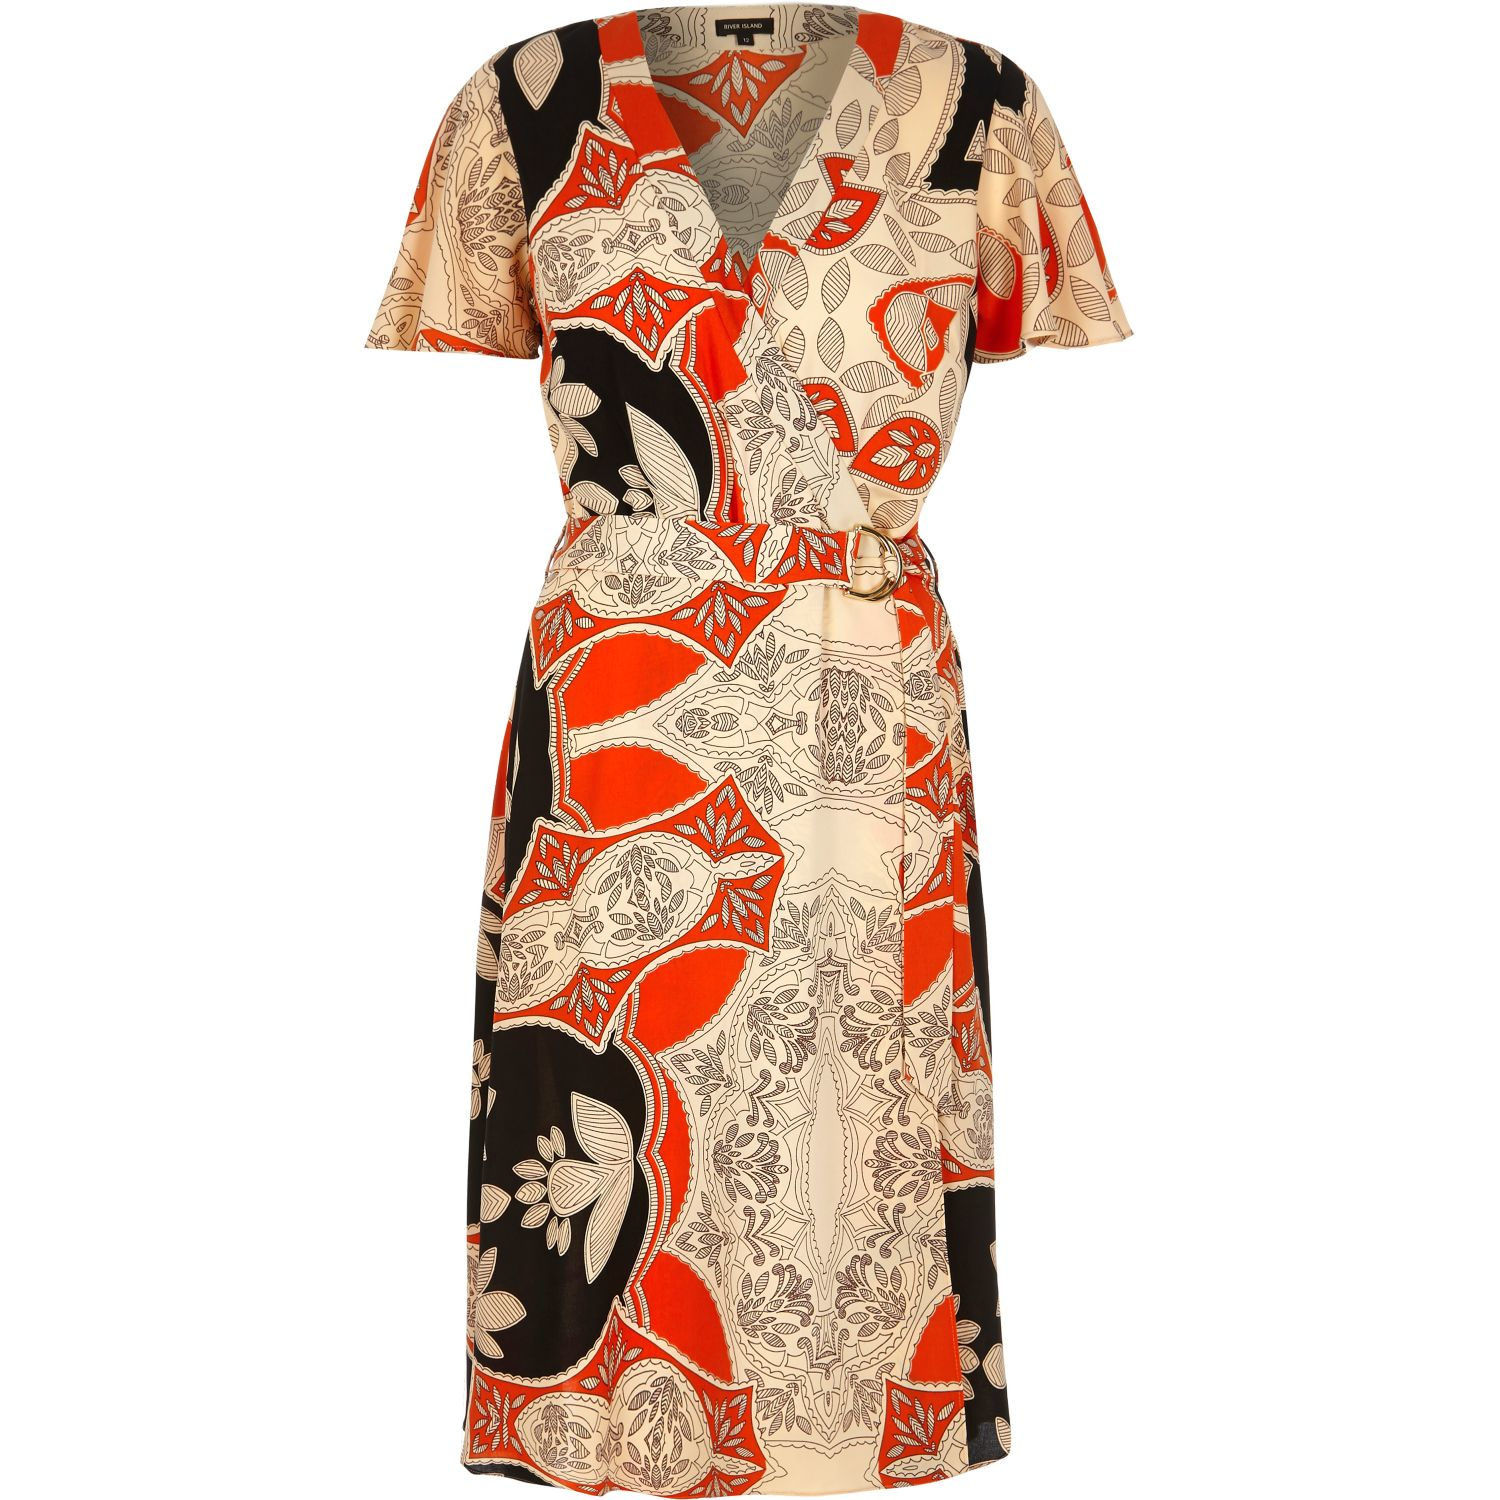 River island Orange Floral Print D-ring Midi Dress in Orange | Lyst